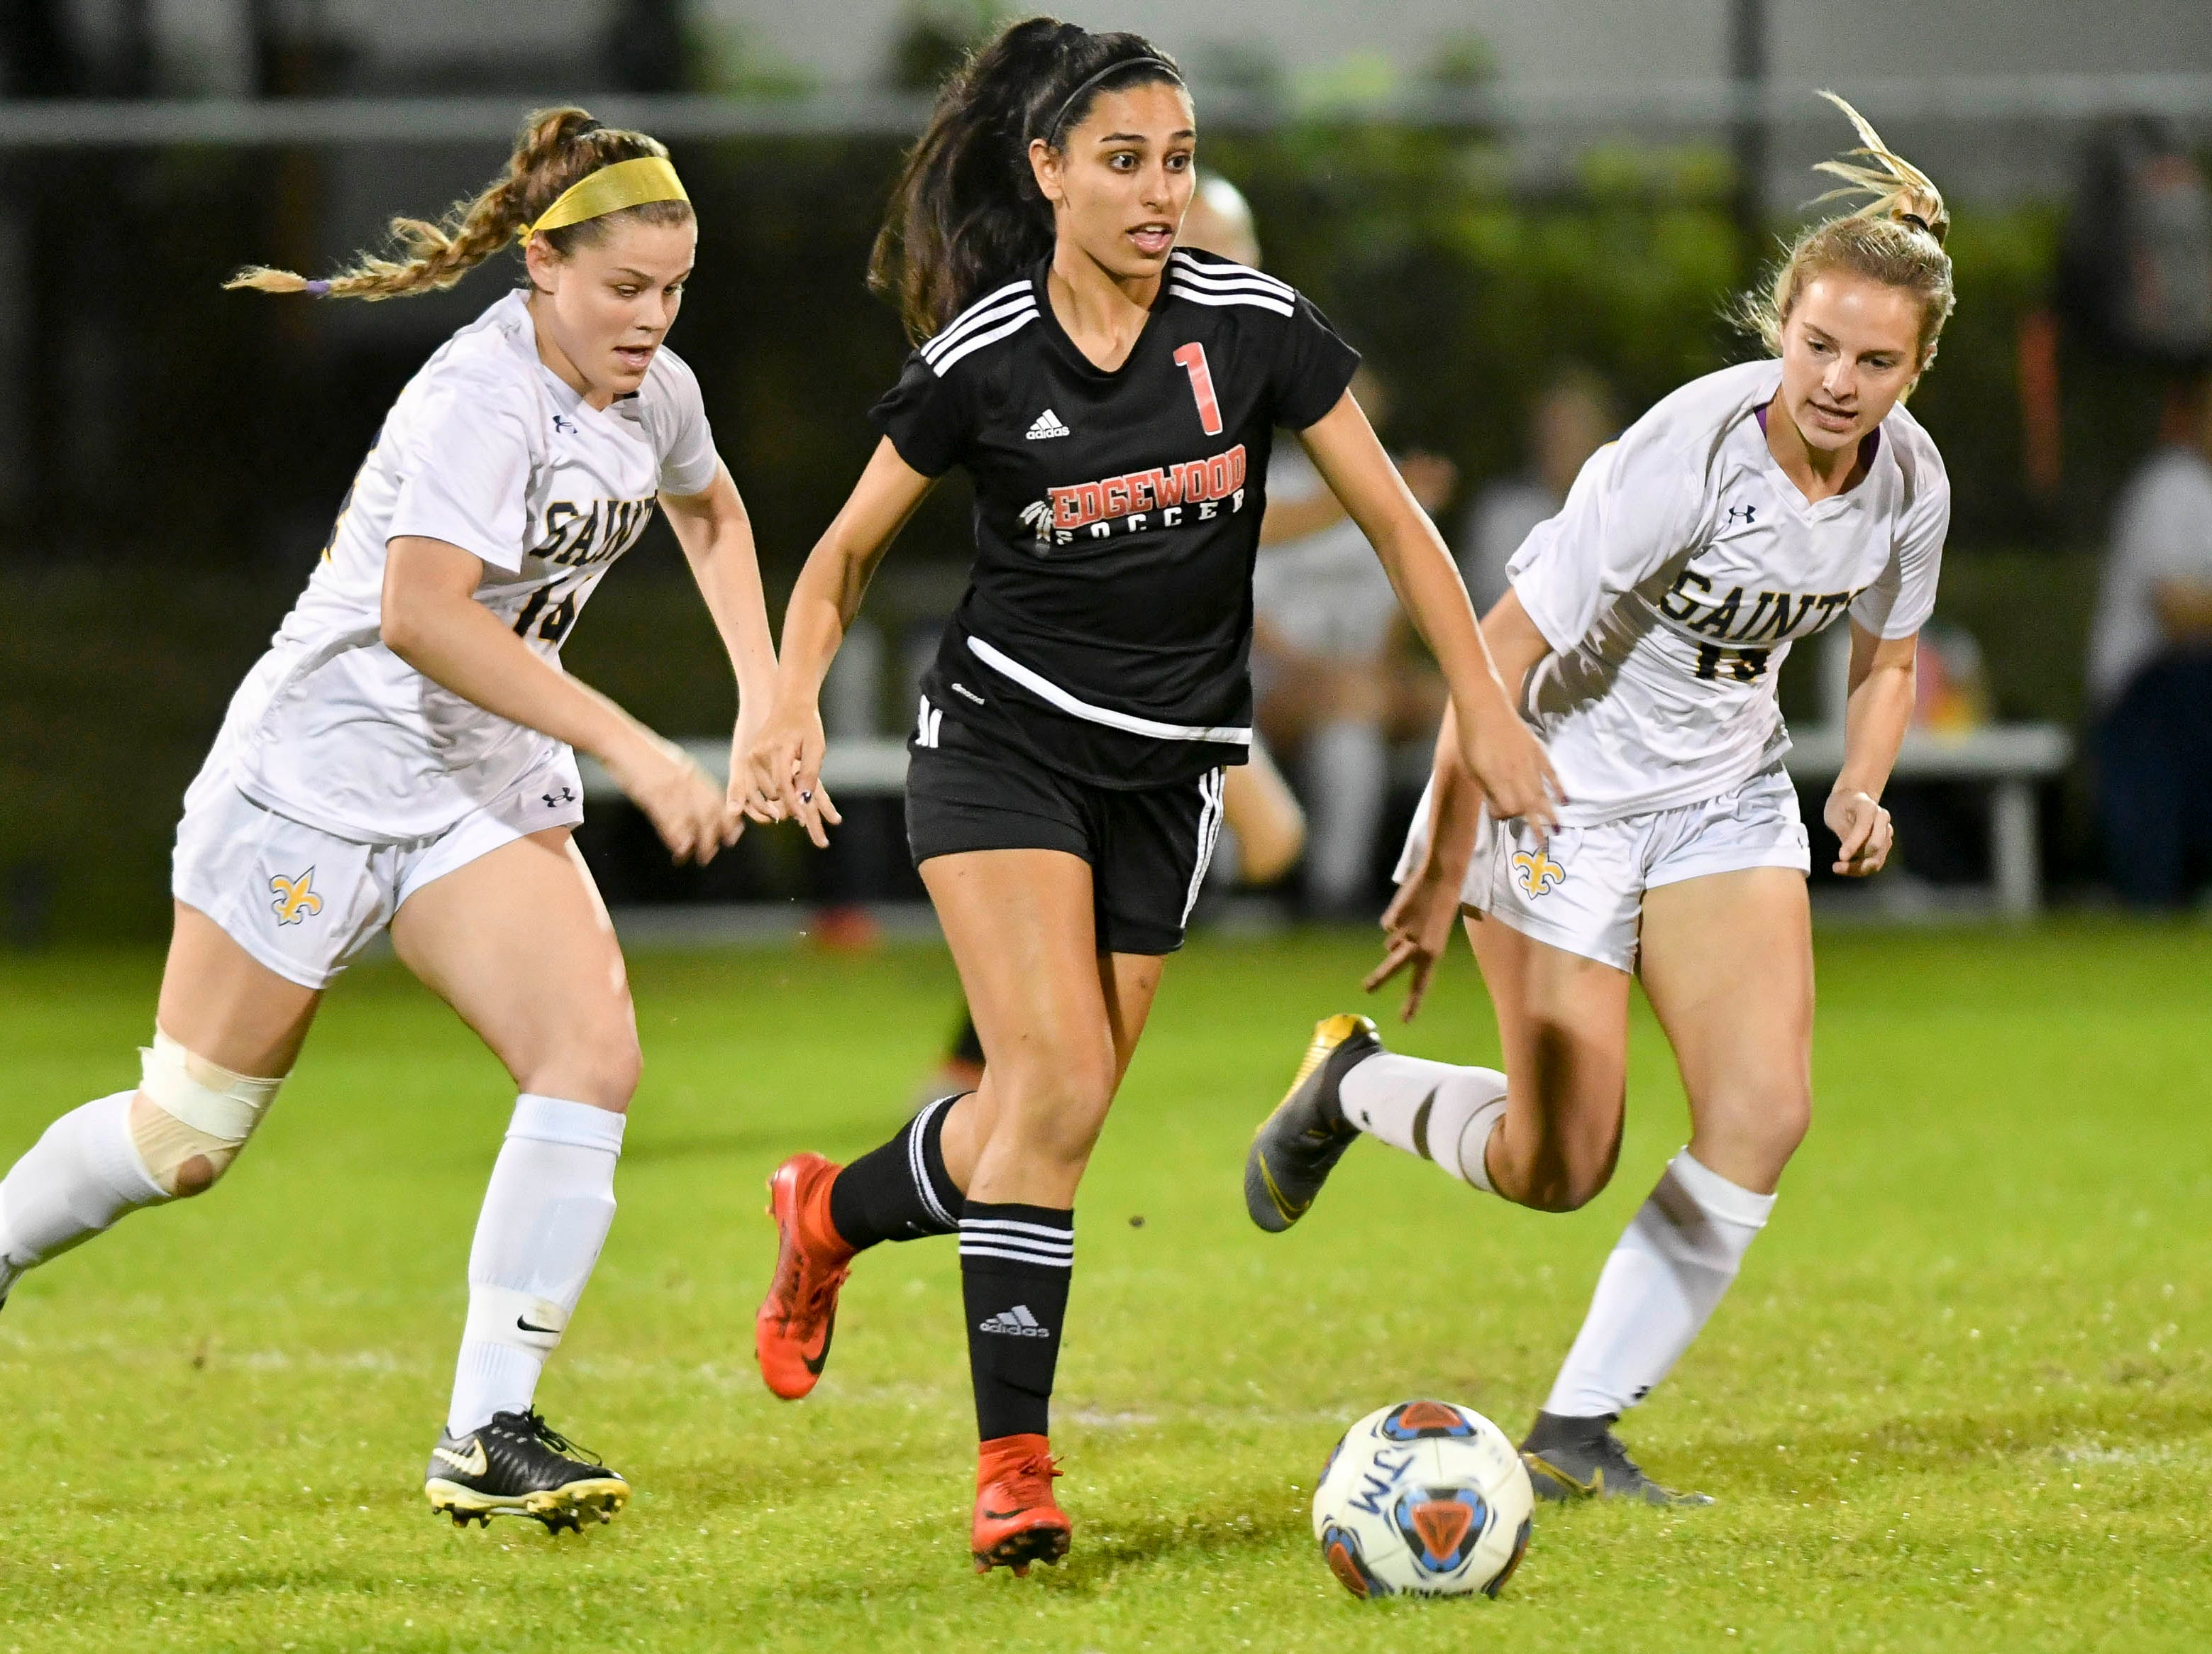 Fran Espinoza of Edgewood (1) is pursued by Meg Parent (14) and Sophia Olore (15) of Trinity Prep during Friday's Class 2A regional semifinal at Edgewood Jr/Sr HIgh